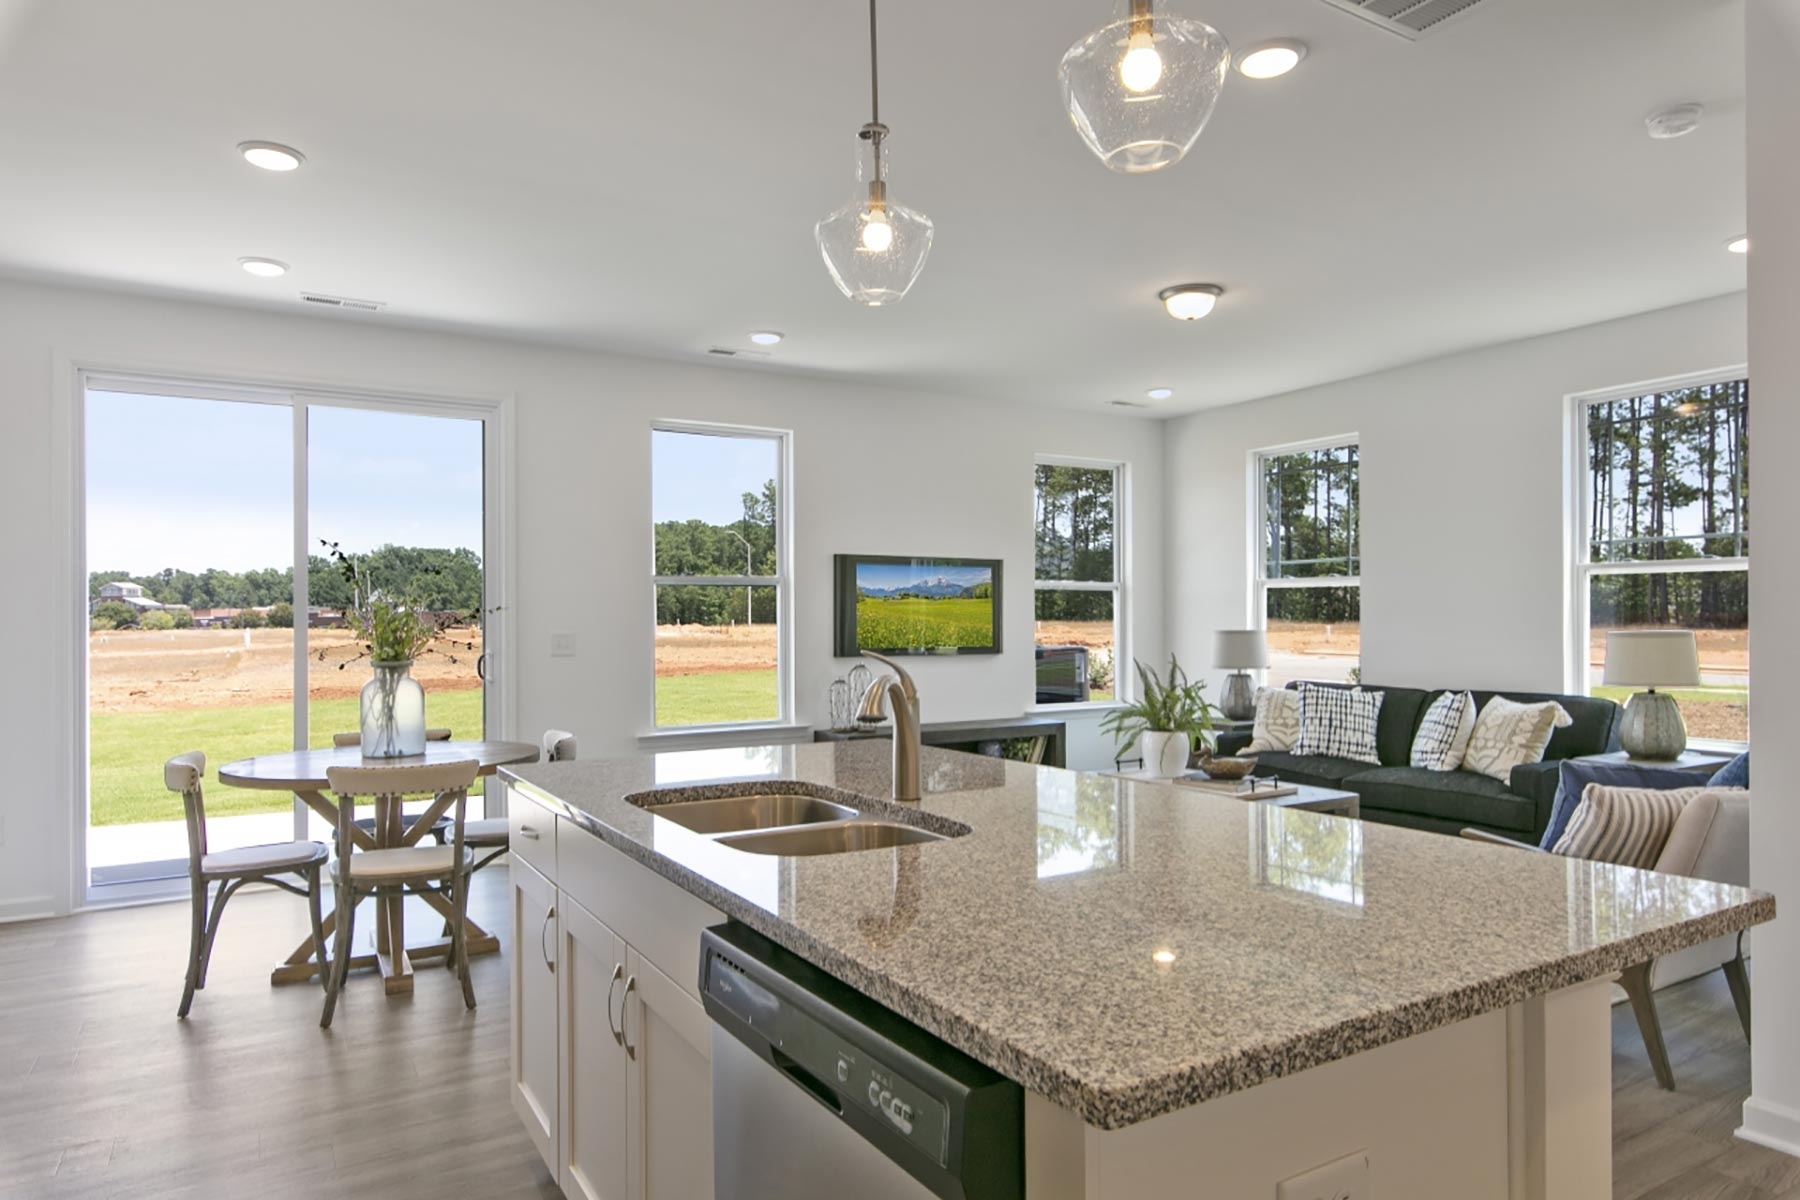 Clifton Plan Greatroom at Minglewood Townhomes in Garner North Carolina by Mattamy Homes